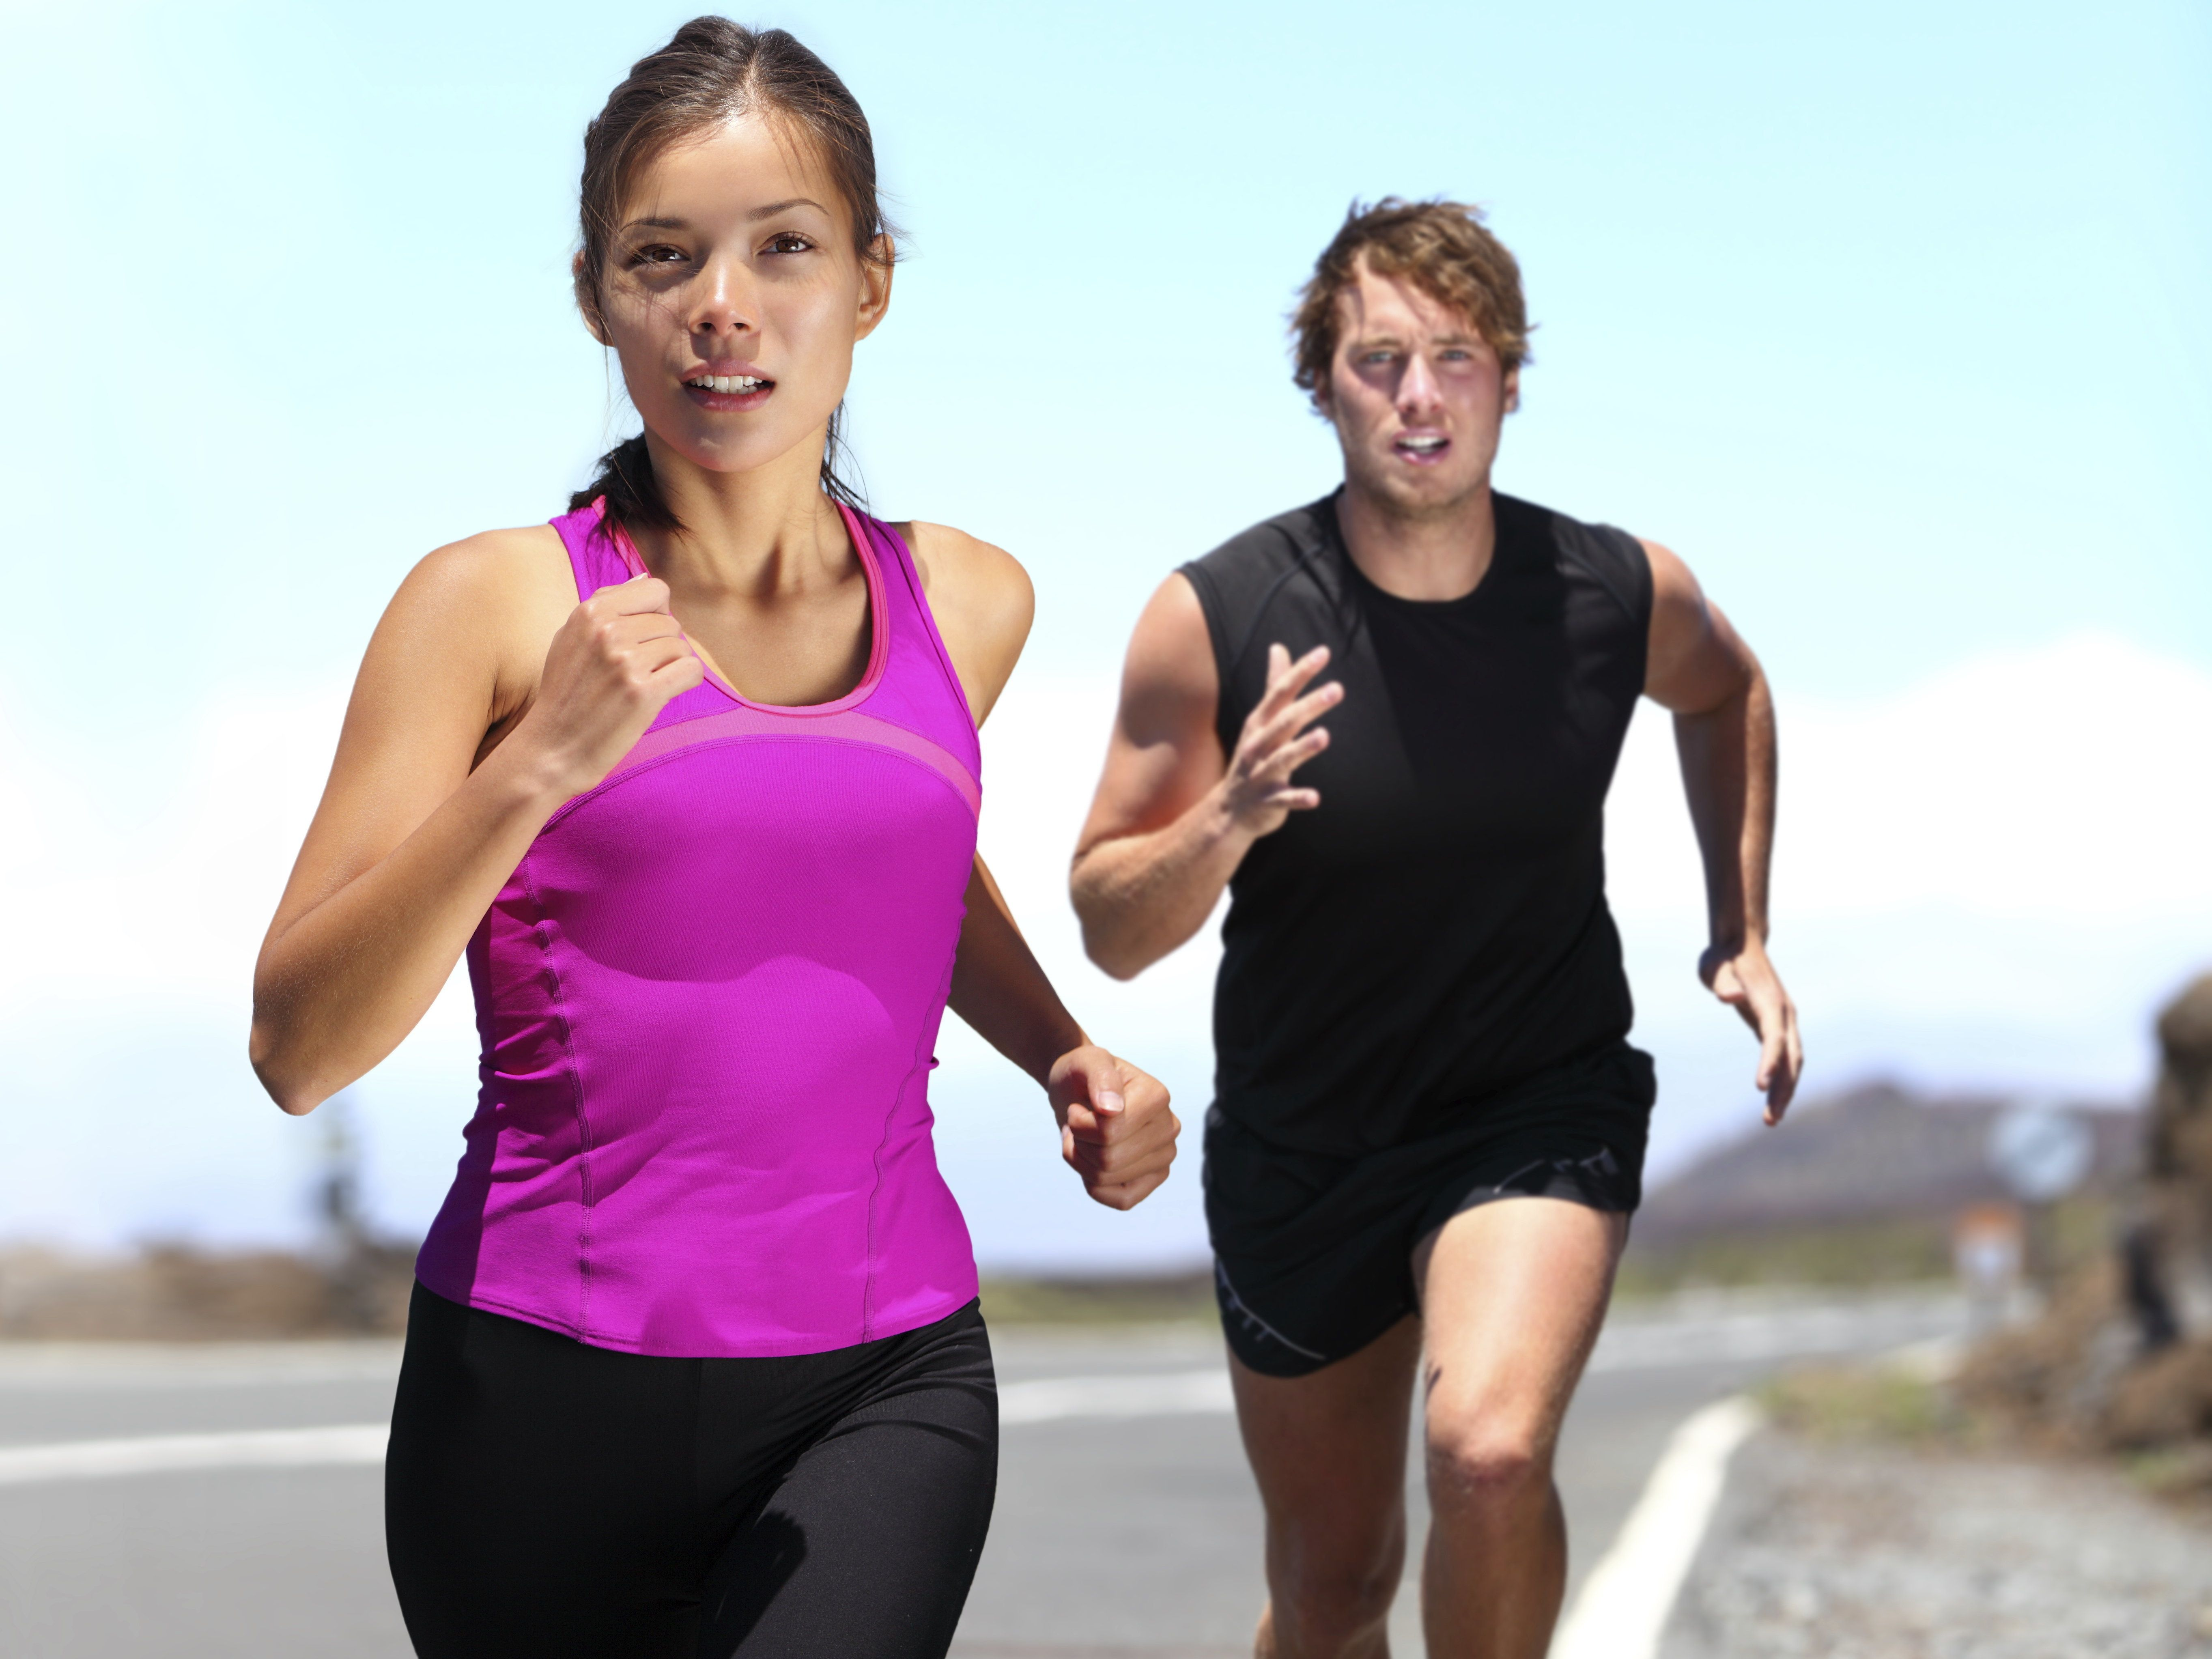 <p>Most runners think about their pace and distance; pain and discomfort; and their running environment, study shows.</p>